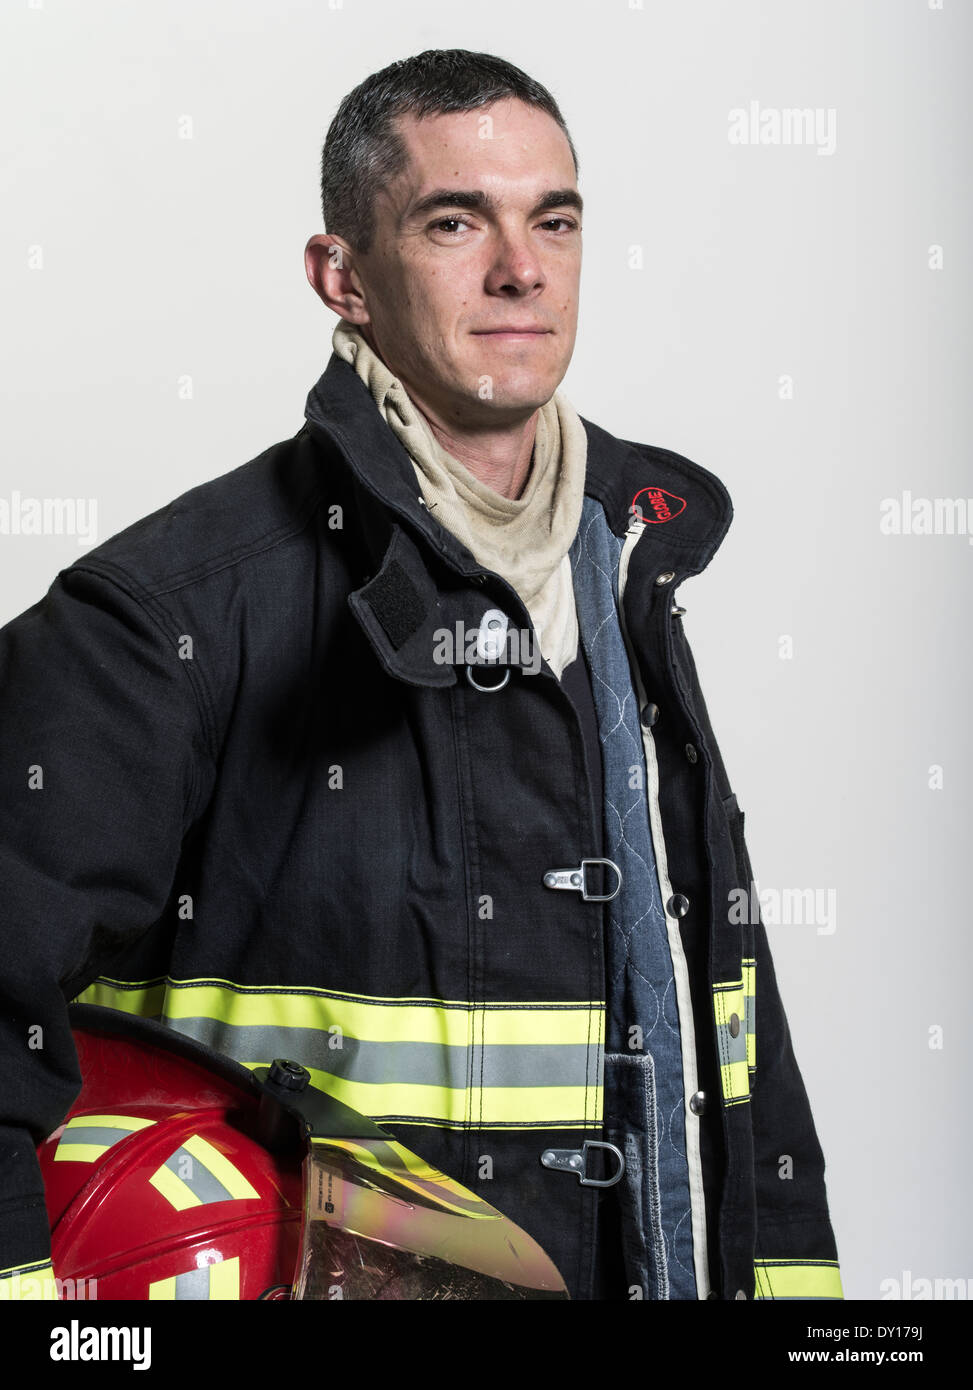 Male firefighter in structural firefighting uniform with breathing apparatus and axe Stock Photo